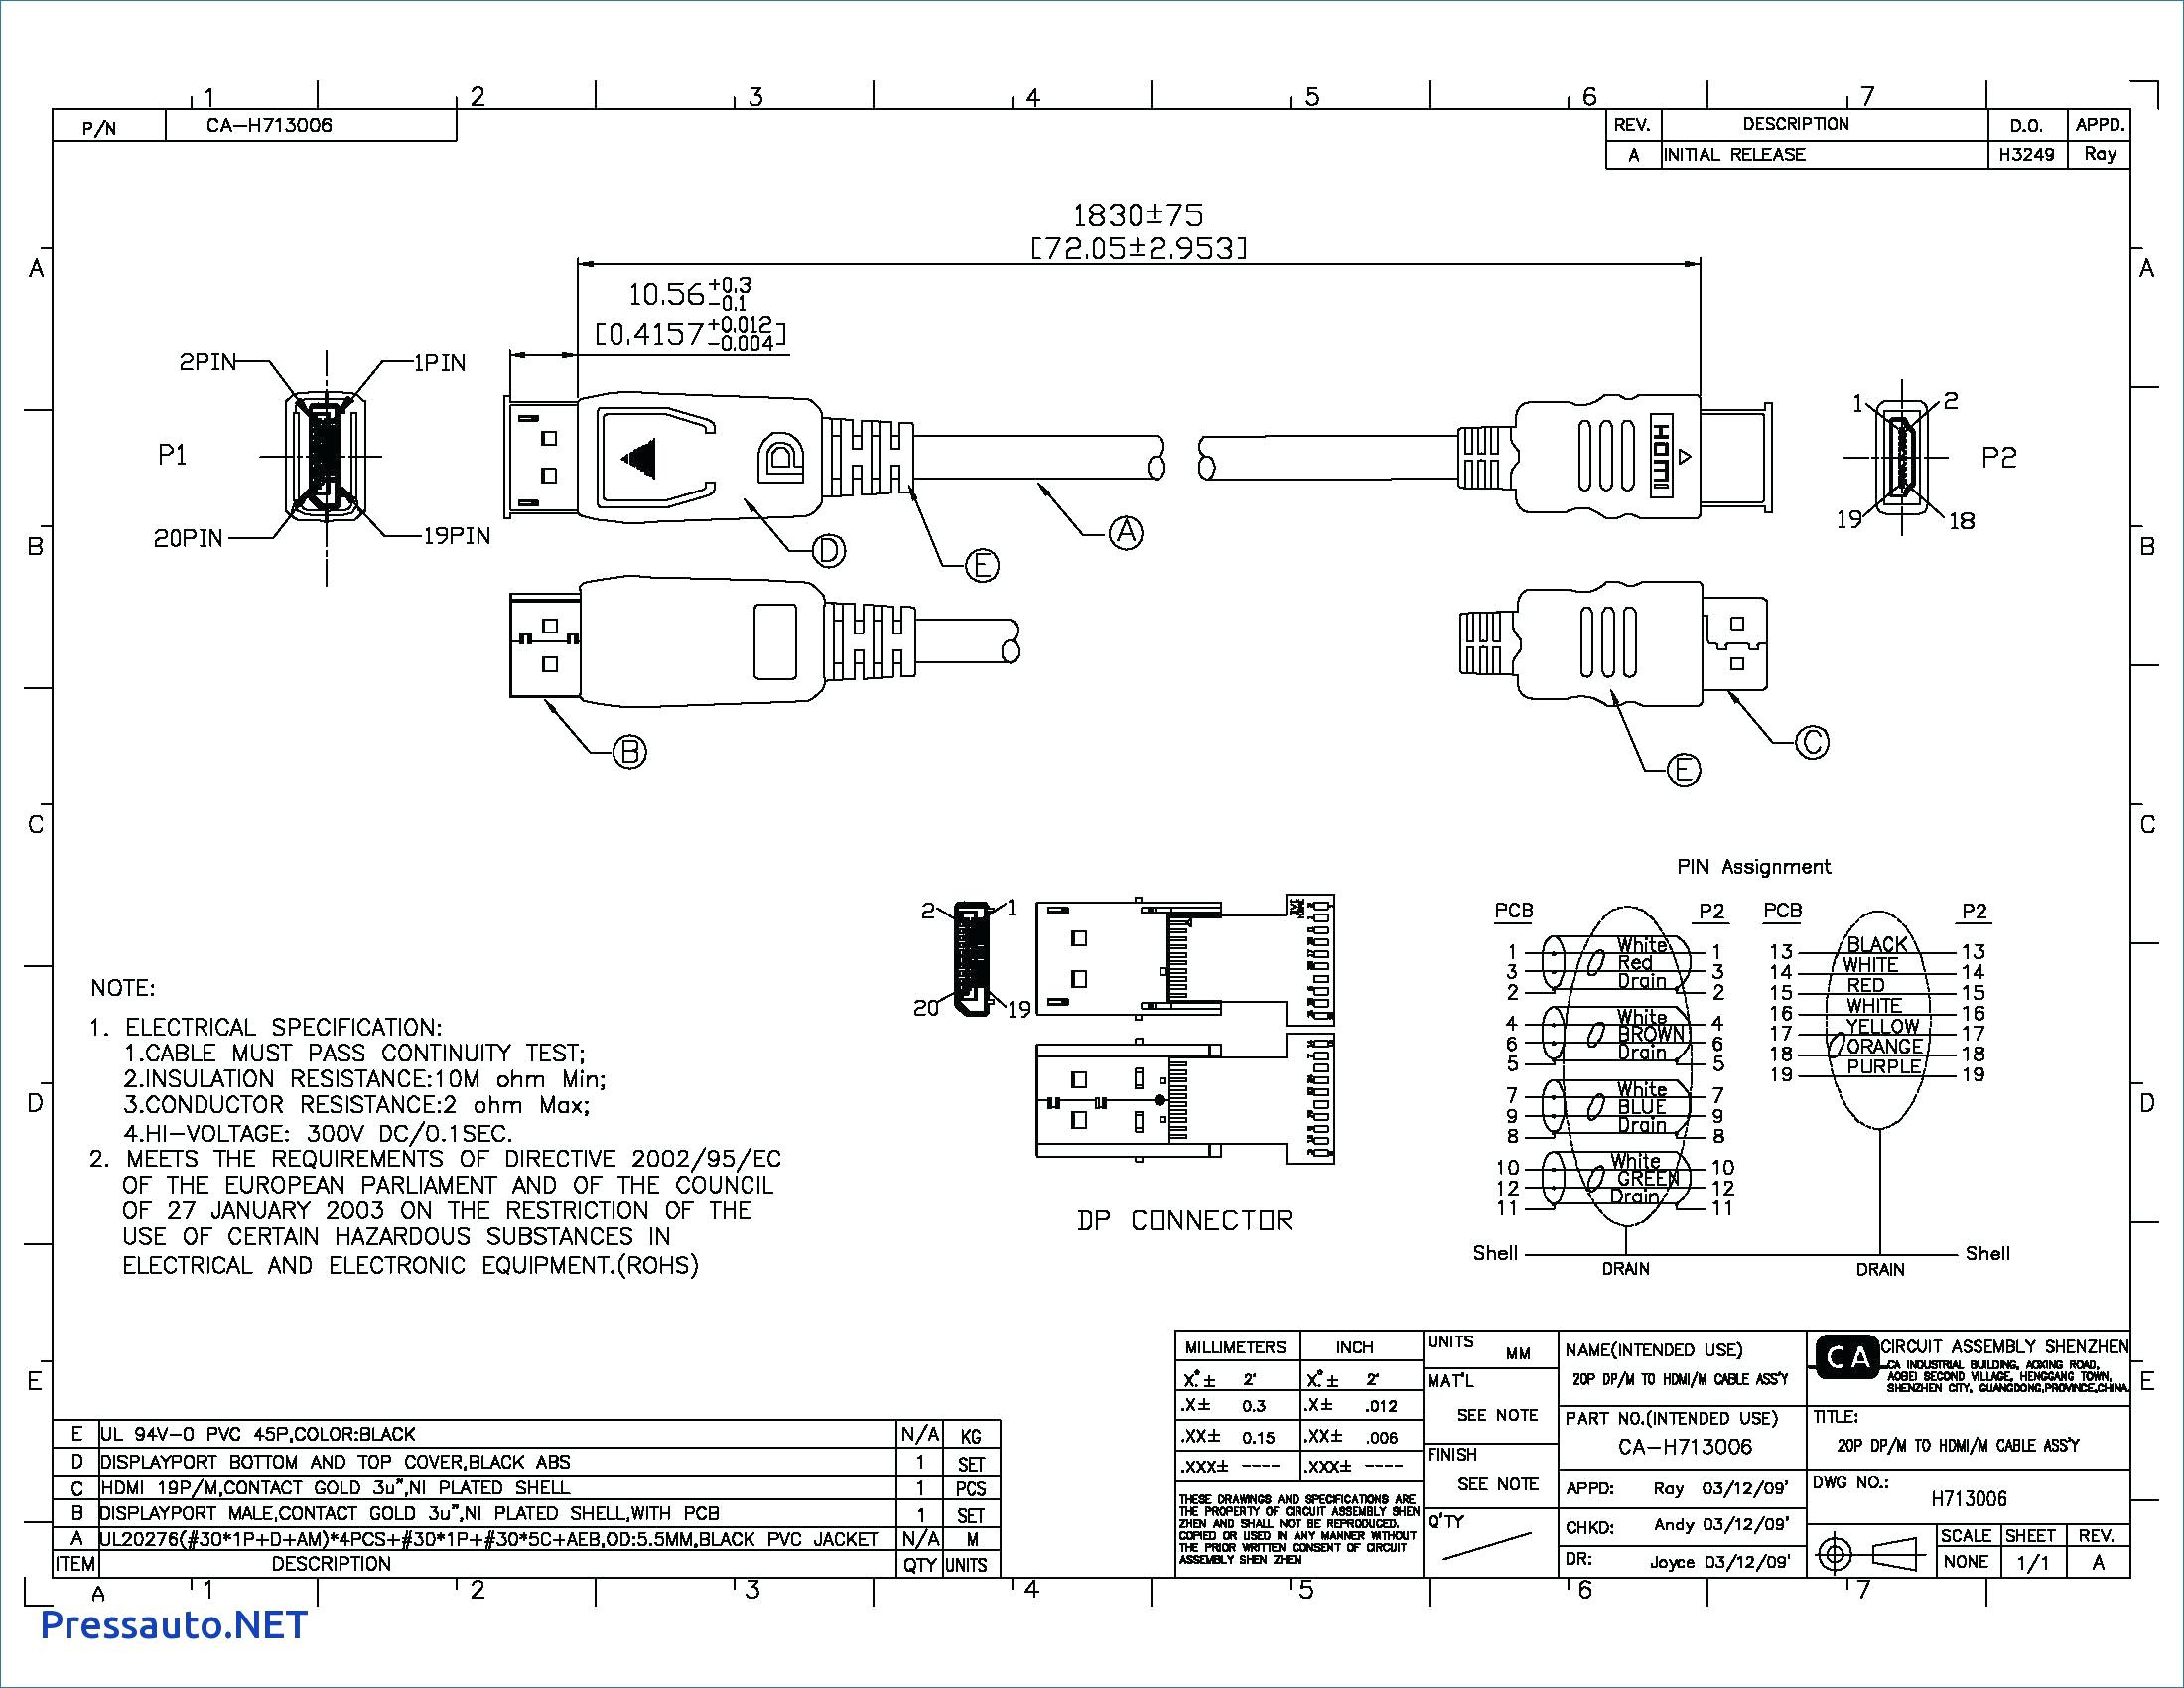 bunker hill security camera 91851 wiring diagram harbor freight security camera wiring diagram awesome delighted bunker hill security item wiring diagram ideas the 9i bunker hill security camera 91851 wiring diagram collection wiring